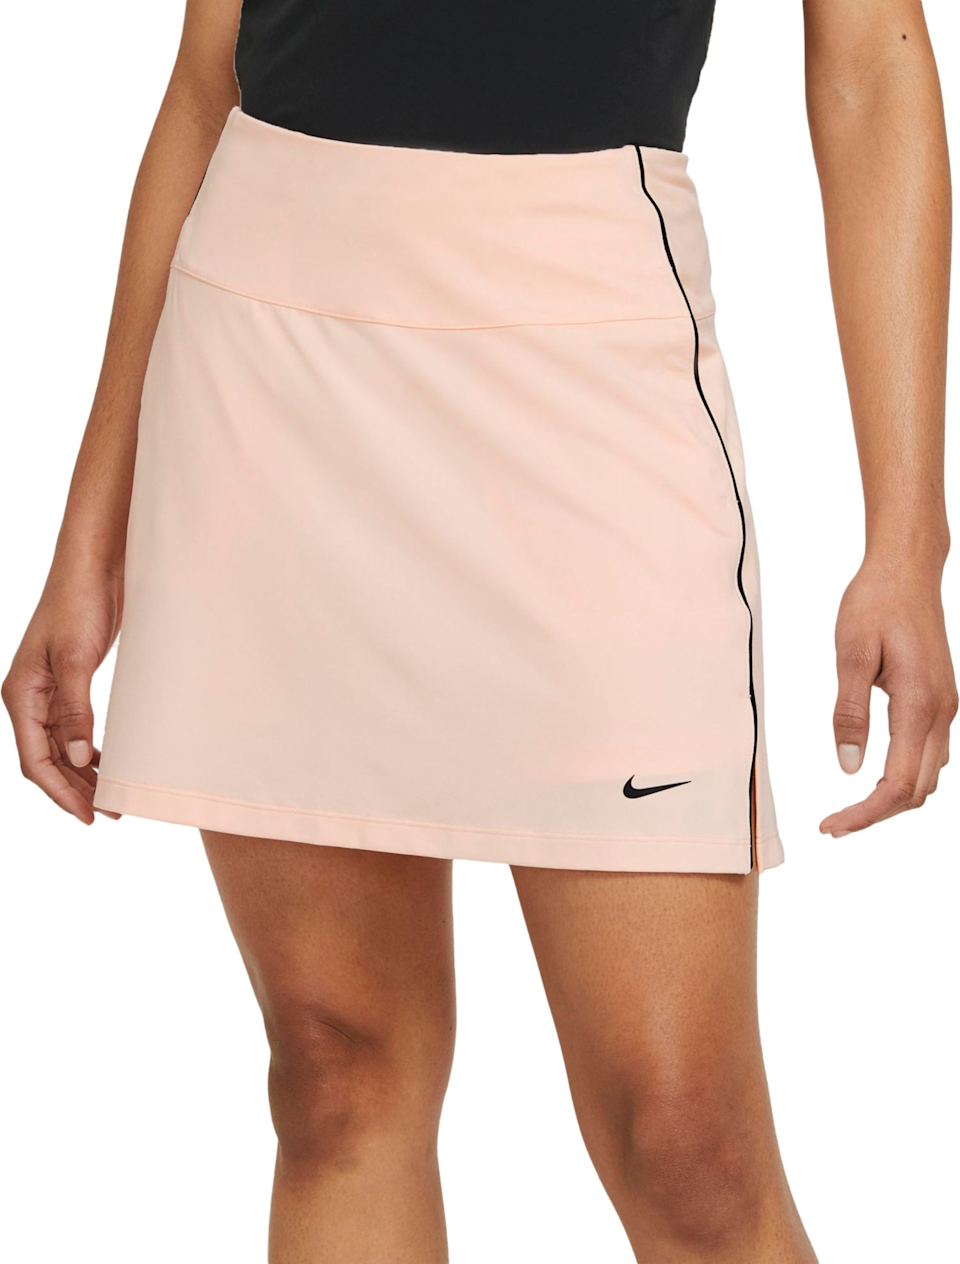 """<br><br><strong>Nike</strong> Dri-FIT UV Victory 17"""" Golf Skirt, $, available at <a href=""""https://go.skimresources.com/?id=30283X879131&url=https%3A%2F%2Fwww.dickssportinggoods.com%2Fp%2Fnike-womens-dri-fit-uv-victory-17-golf-skirt-20nikwv17nsldskrtapb%2F20nikwv17nsldskrtapb"""" rel=""""nofollow noopener"""" target=""""_blank"""" data-ylk=""""slk:Dick's Sporting Goods"""" class=""""link rapid-noclick-resp"""">Dick's Sporting Goods</a>"""